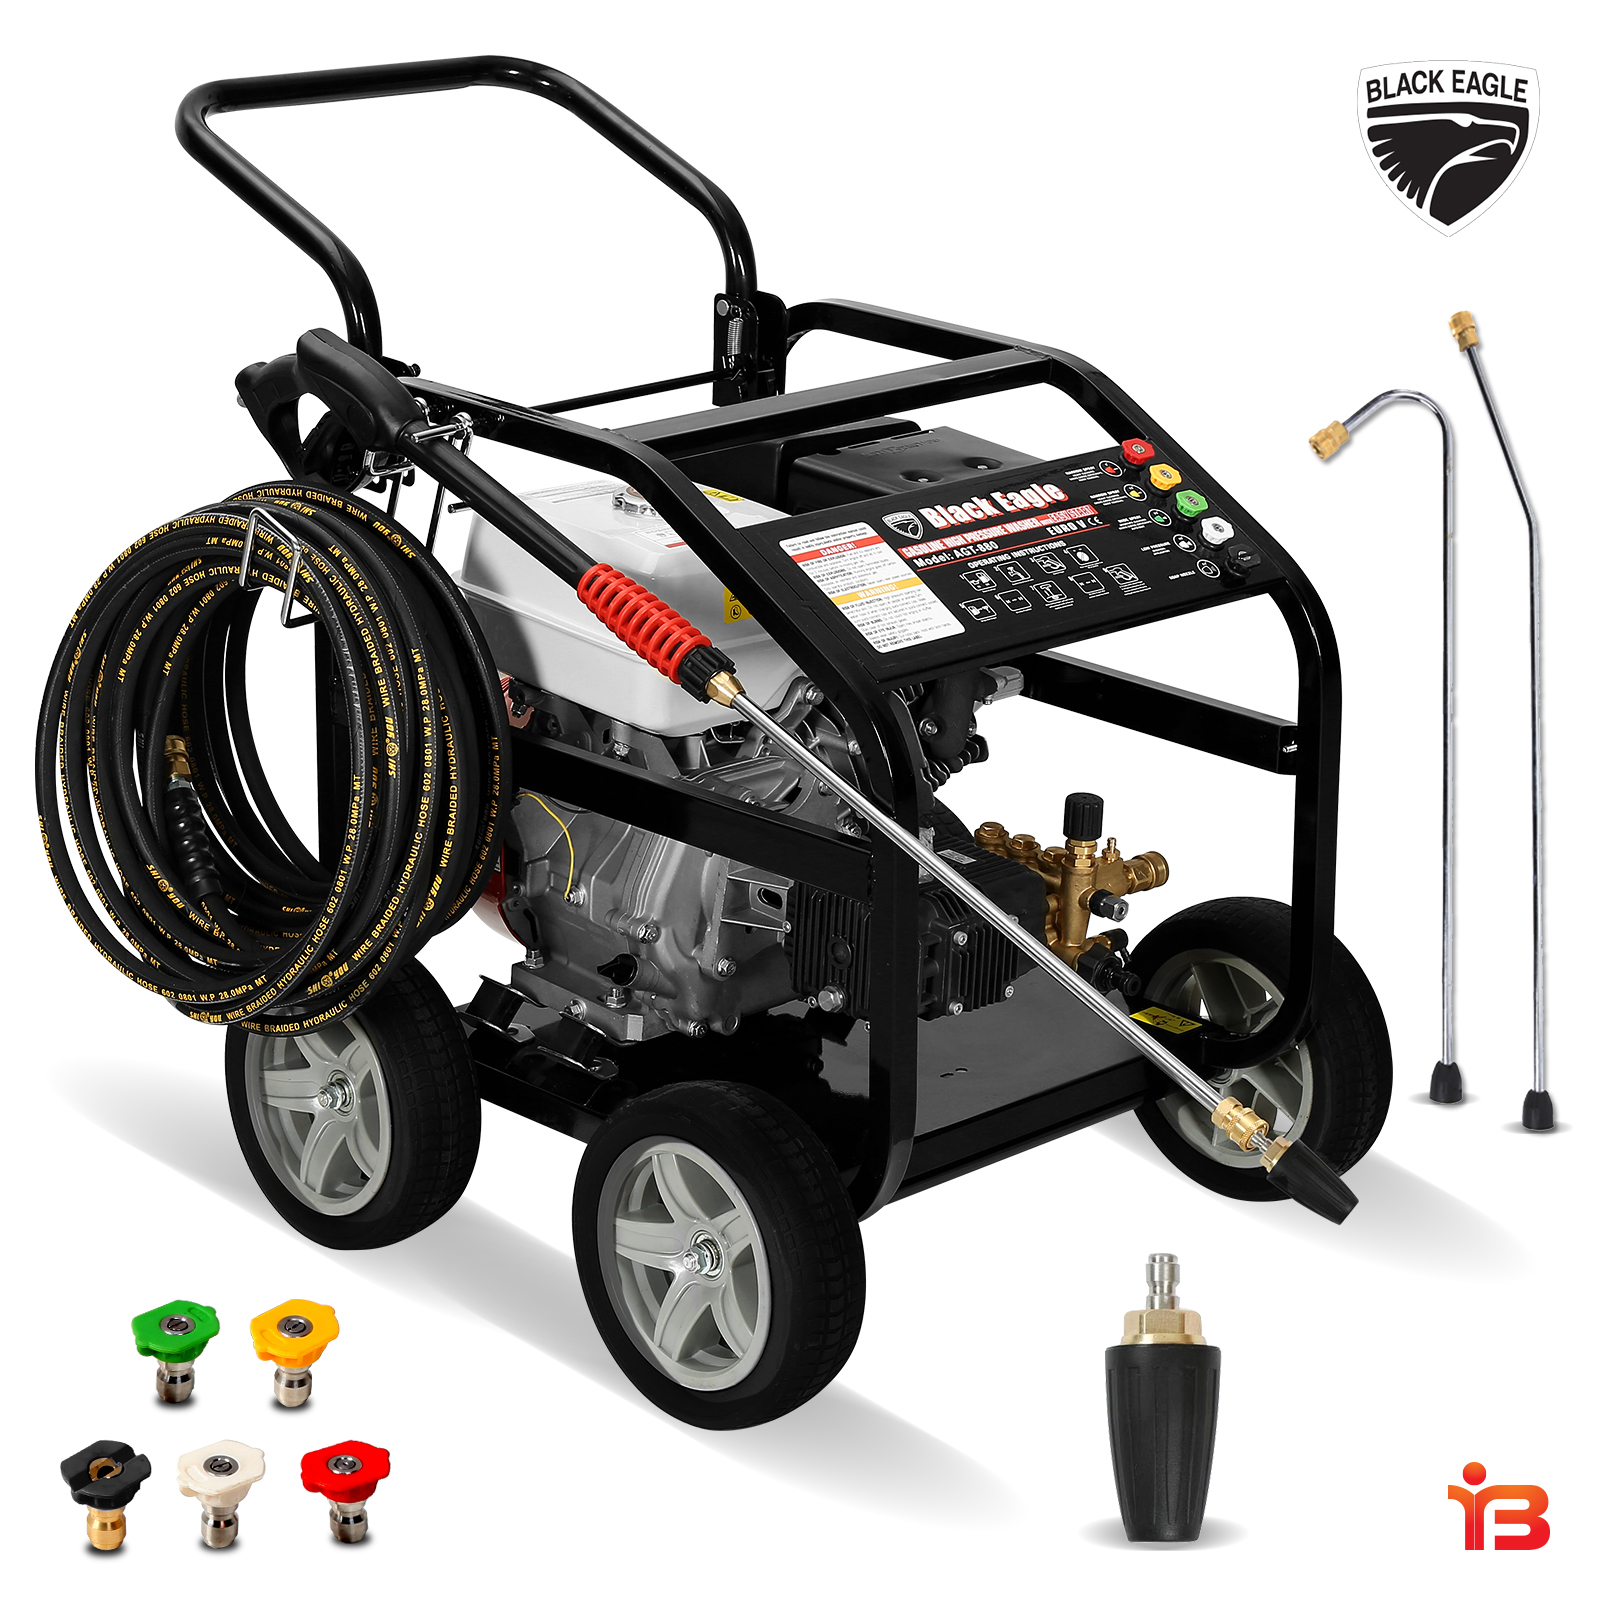 Black Eagle 4800PSI High Pressure Petrol Pressure Washer